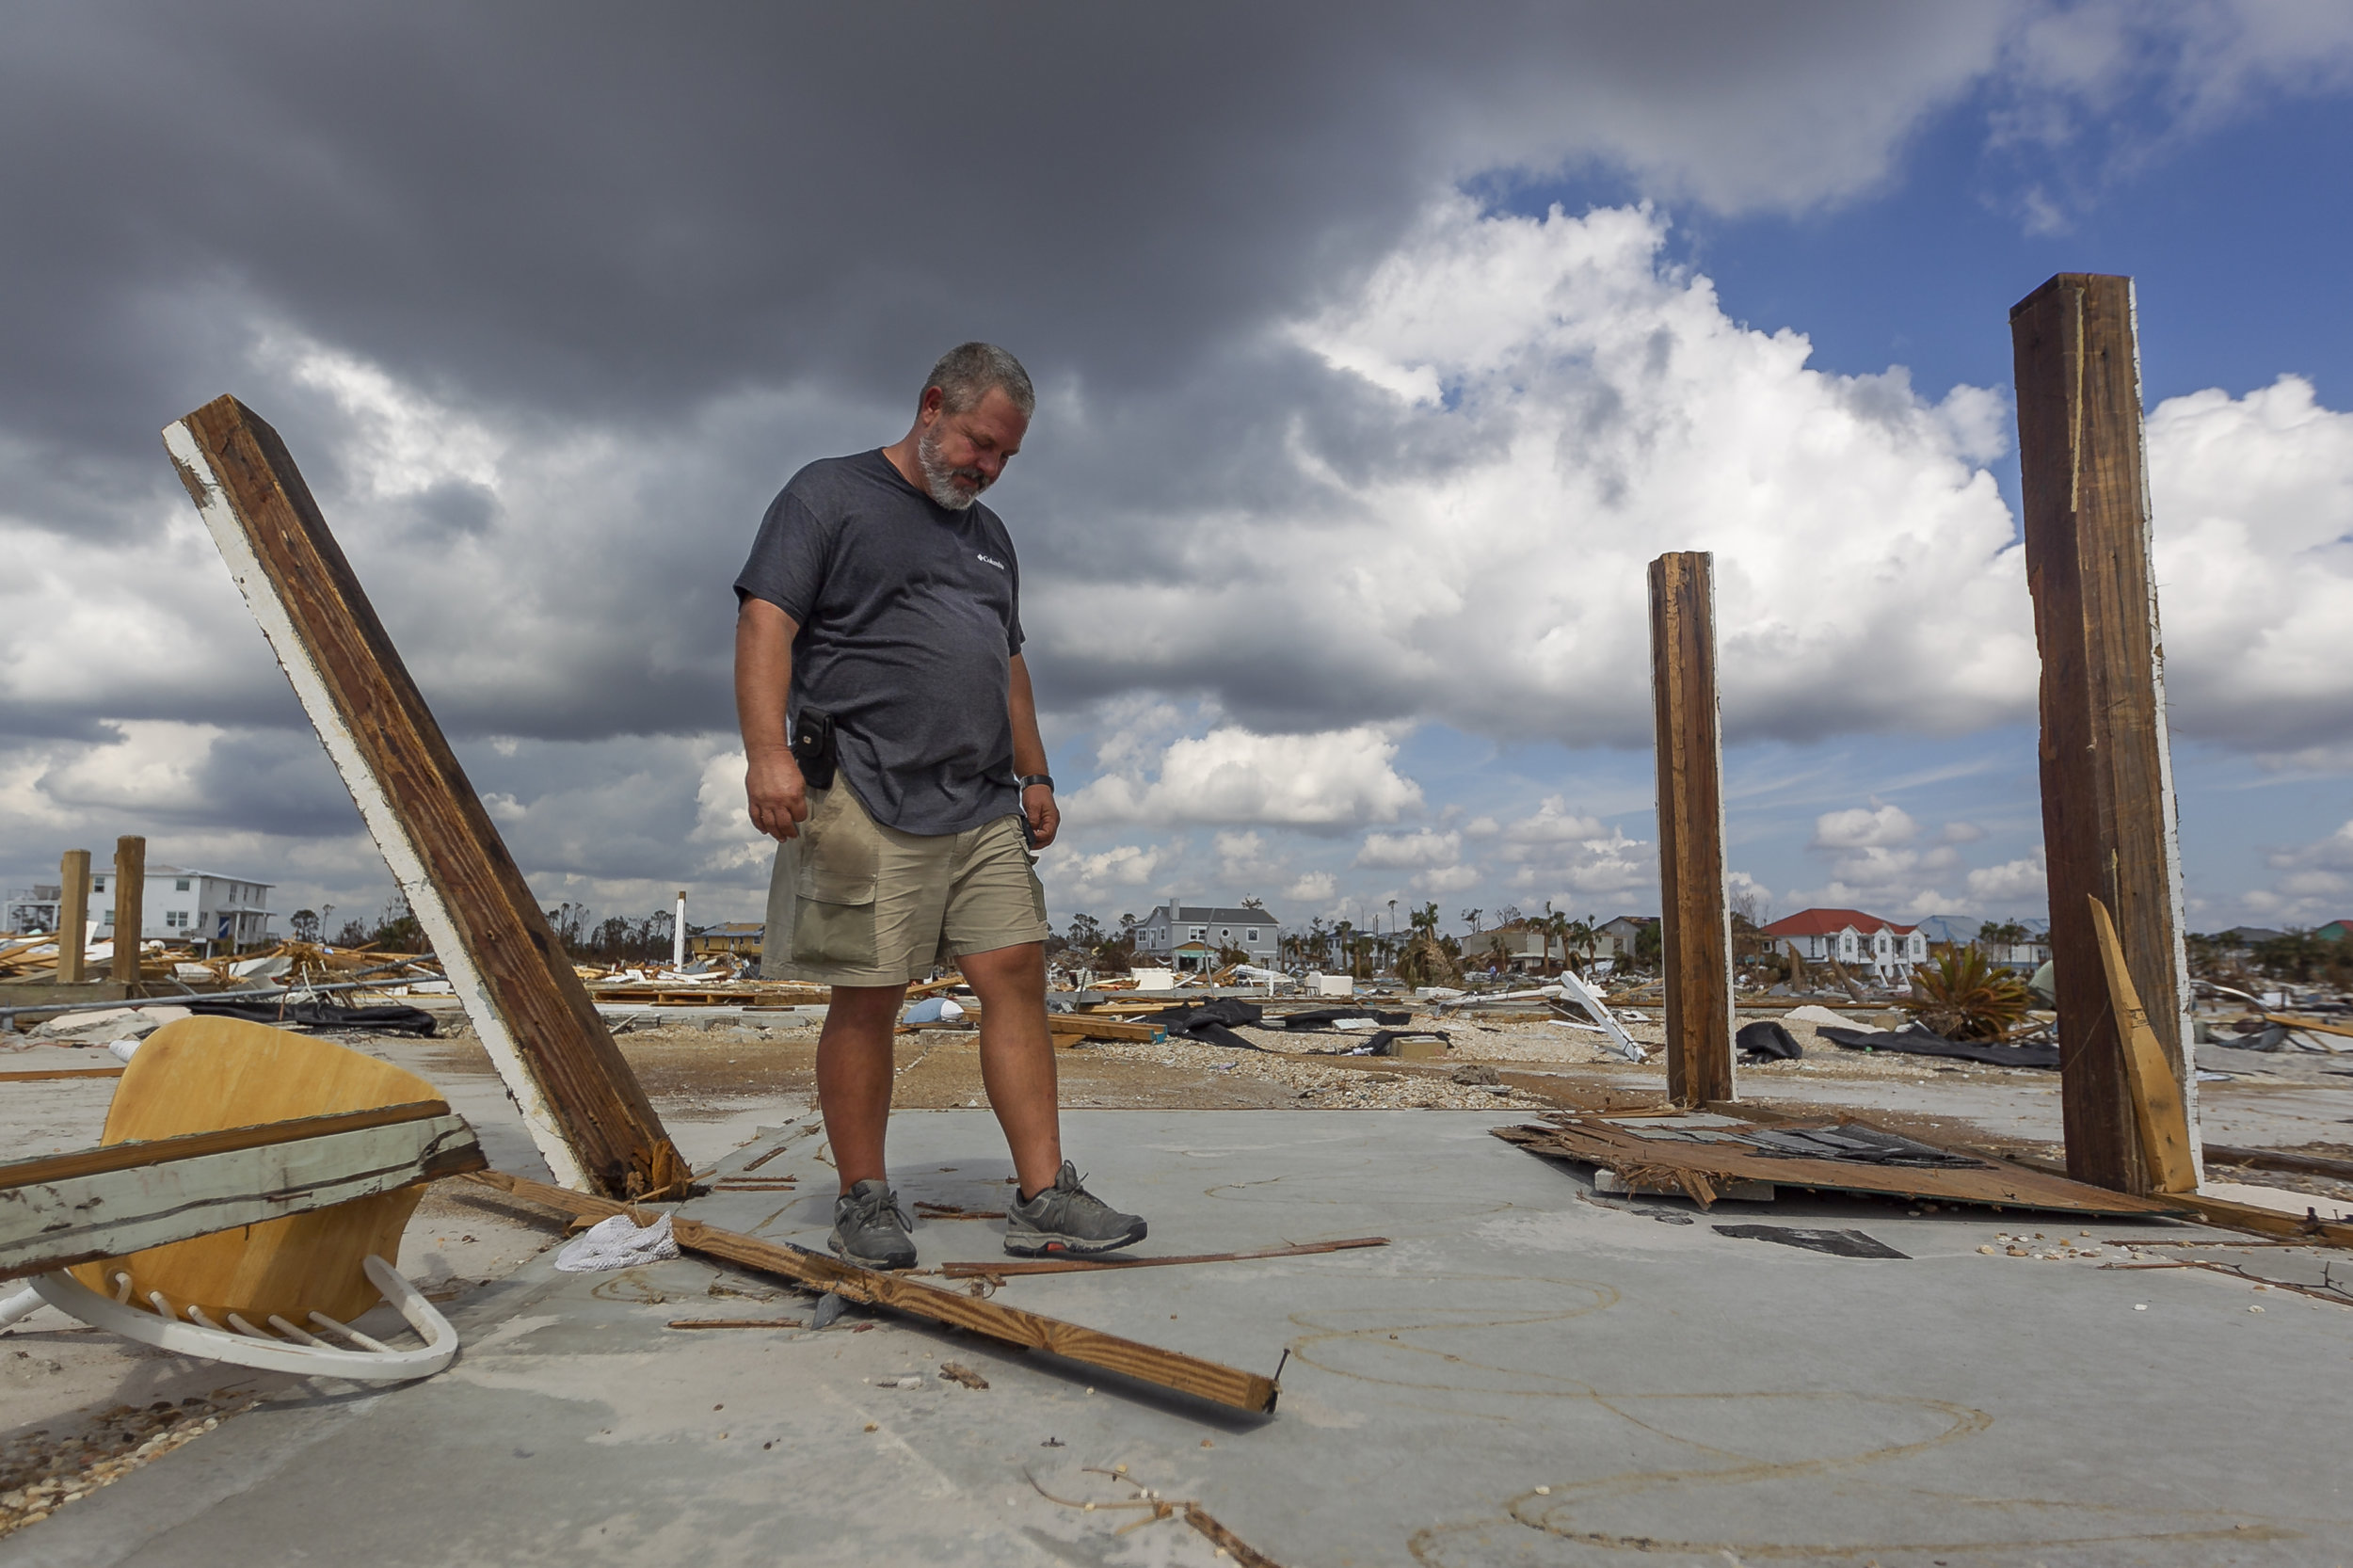 Joe Rodgers, 46, a wholesale produce salesman, surveys the remains of his rental duplex in Mexico Beach, Florida on Friday, October 19, 2018. Hurricane Michael devastated the Florida Panhandle leaving tens of thousands without food, power or shelter.